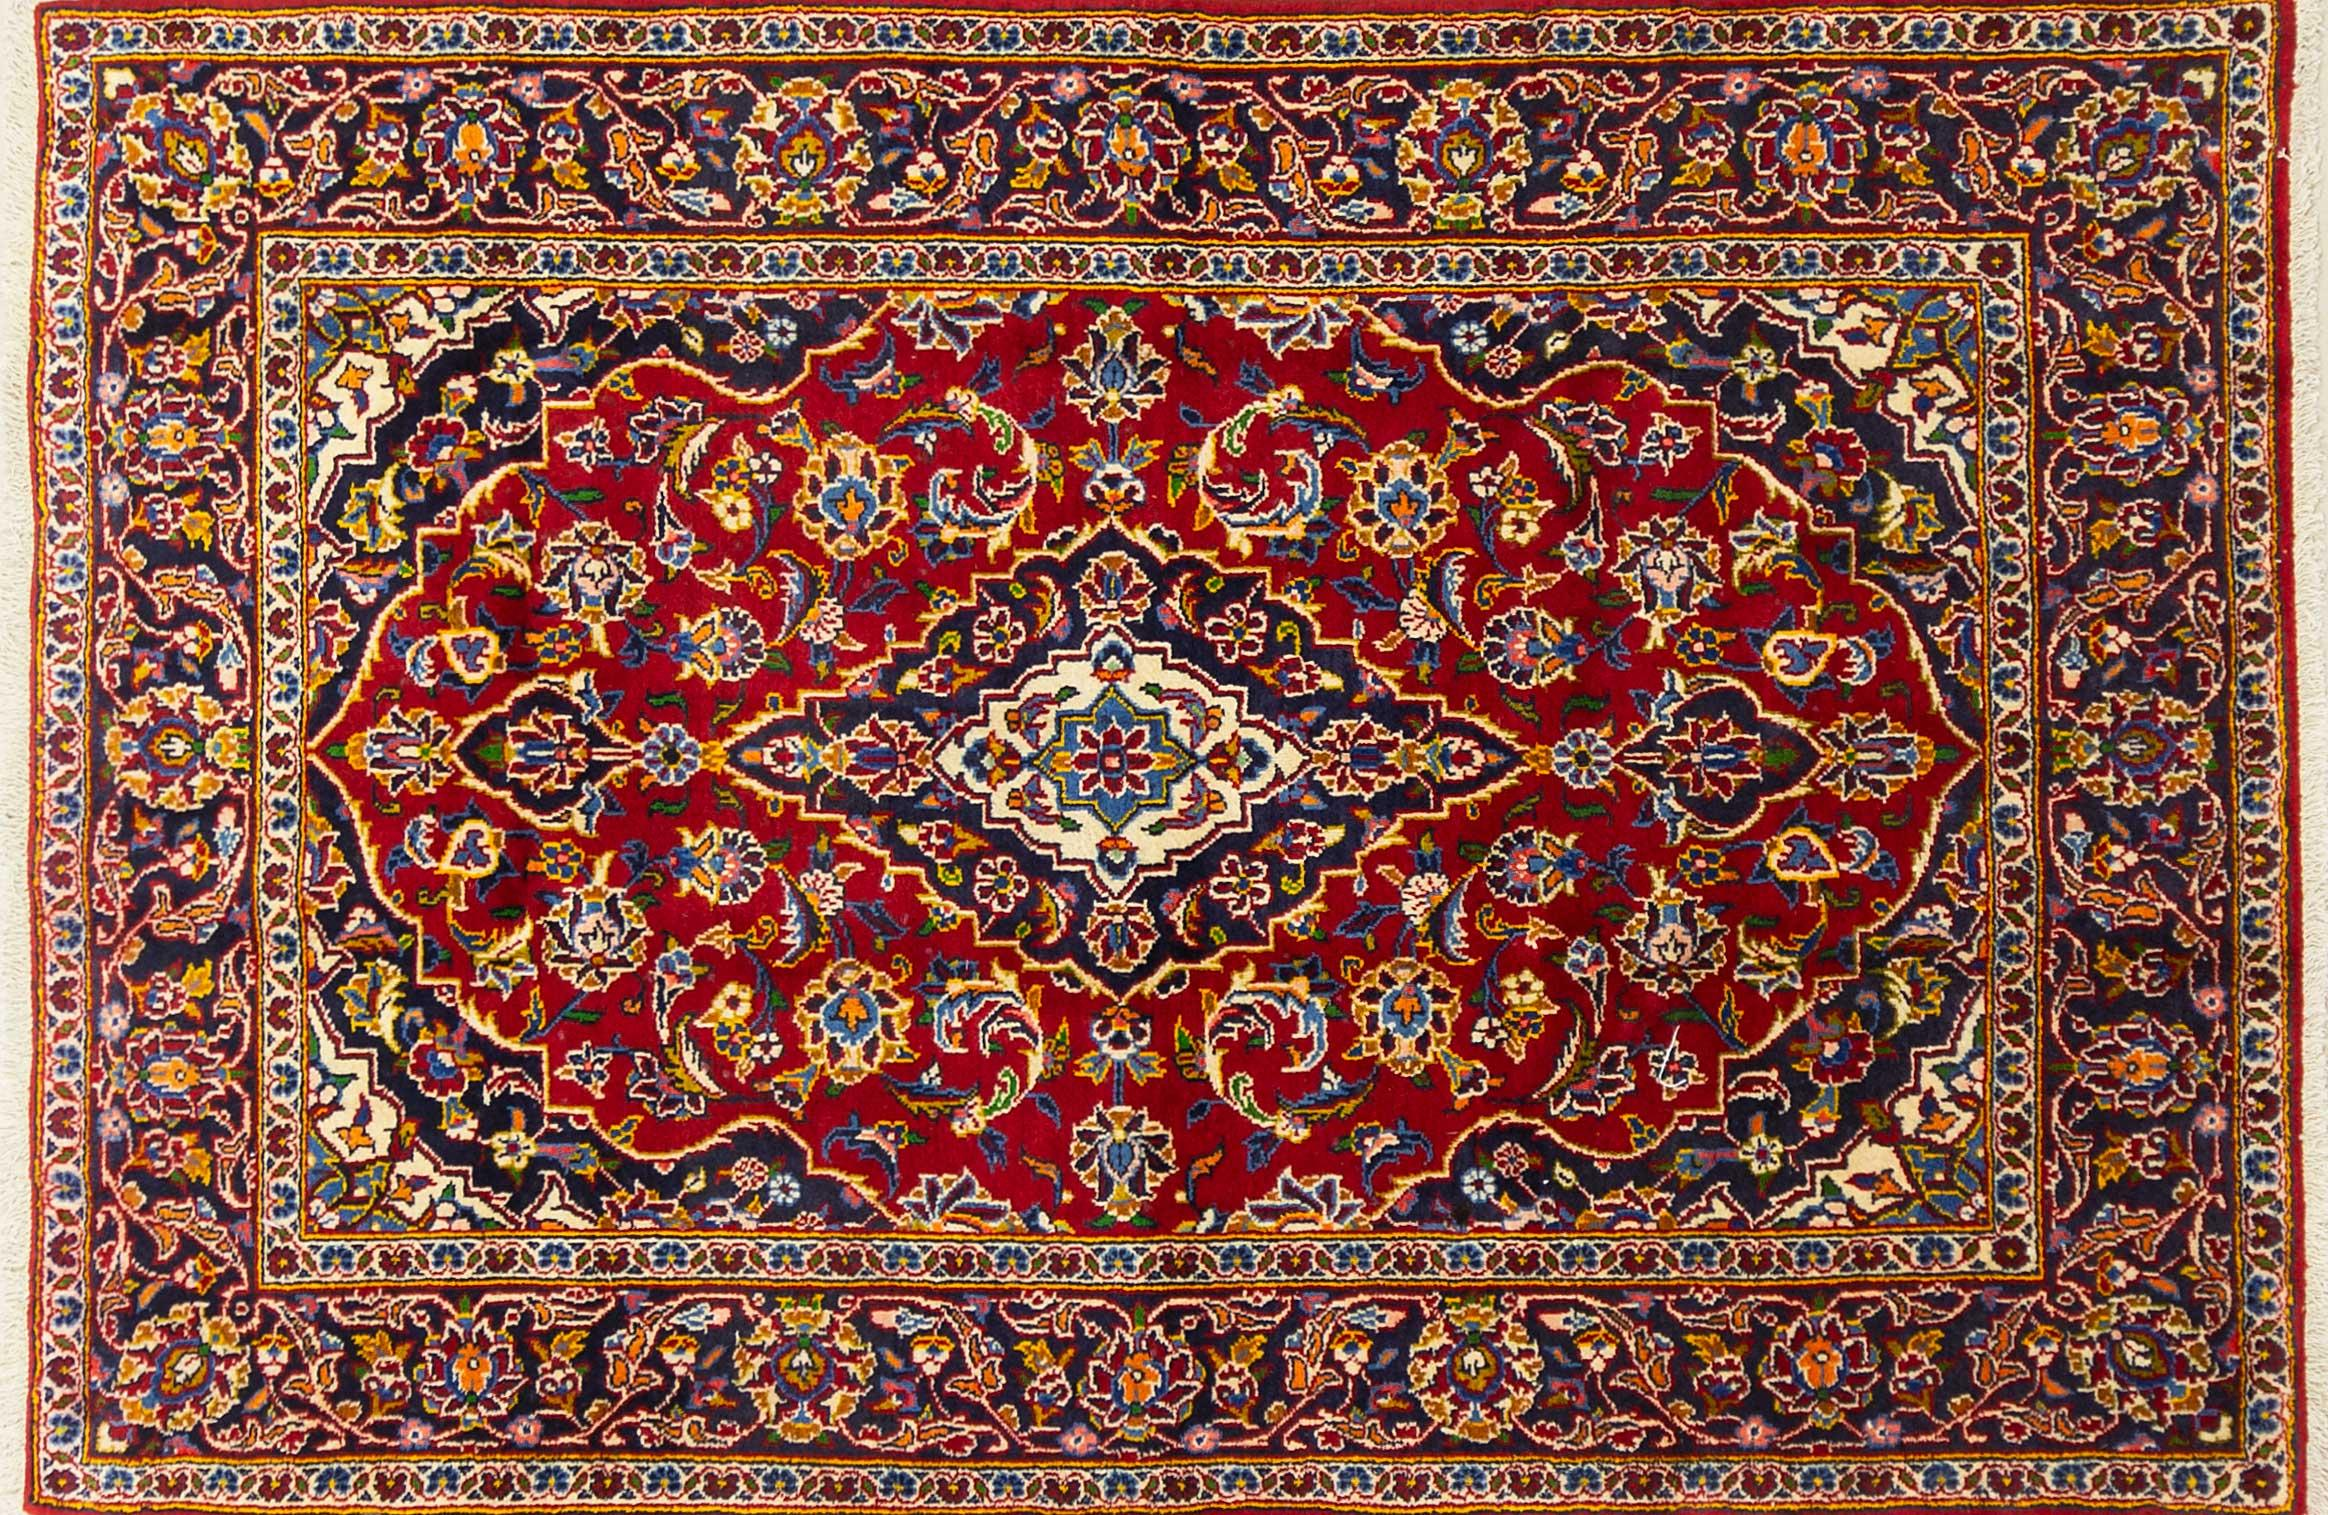 A Persian Hand Knotted Kashan Rug, 203 x 135